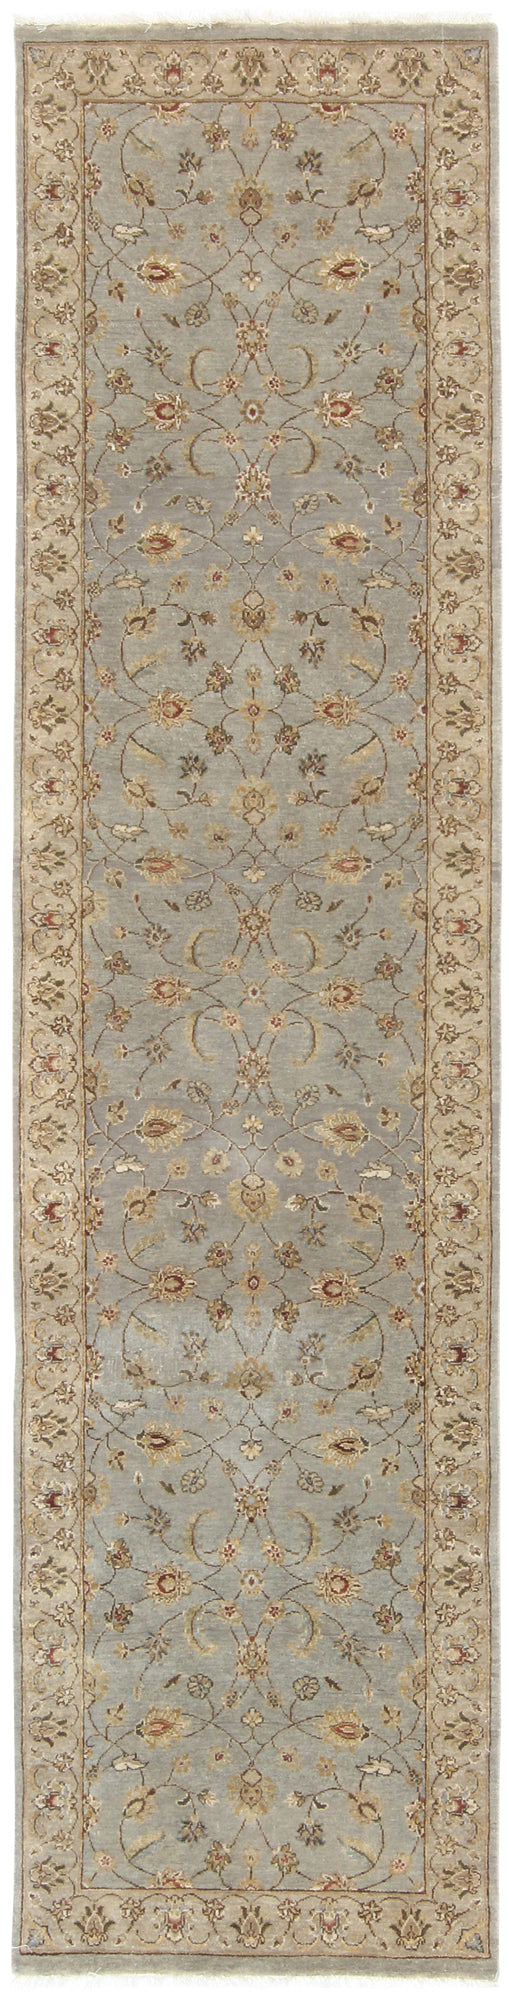 Tabriz Design Runner India-Turco Persian Rug Company Inc.